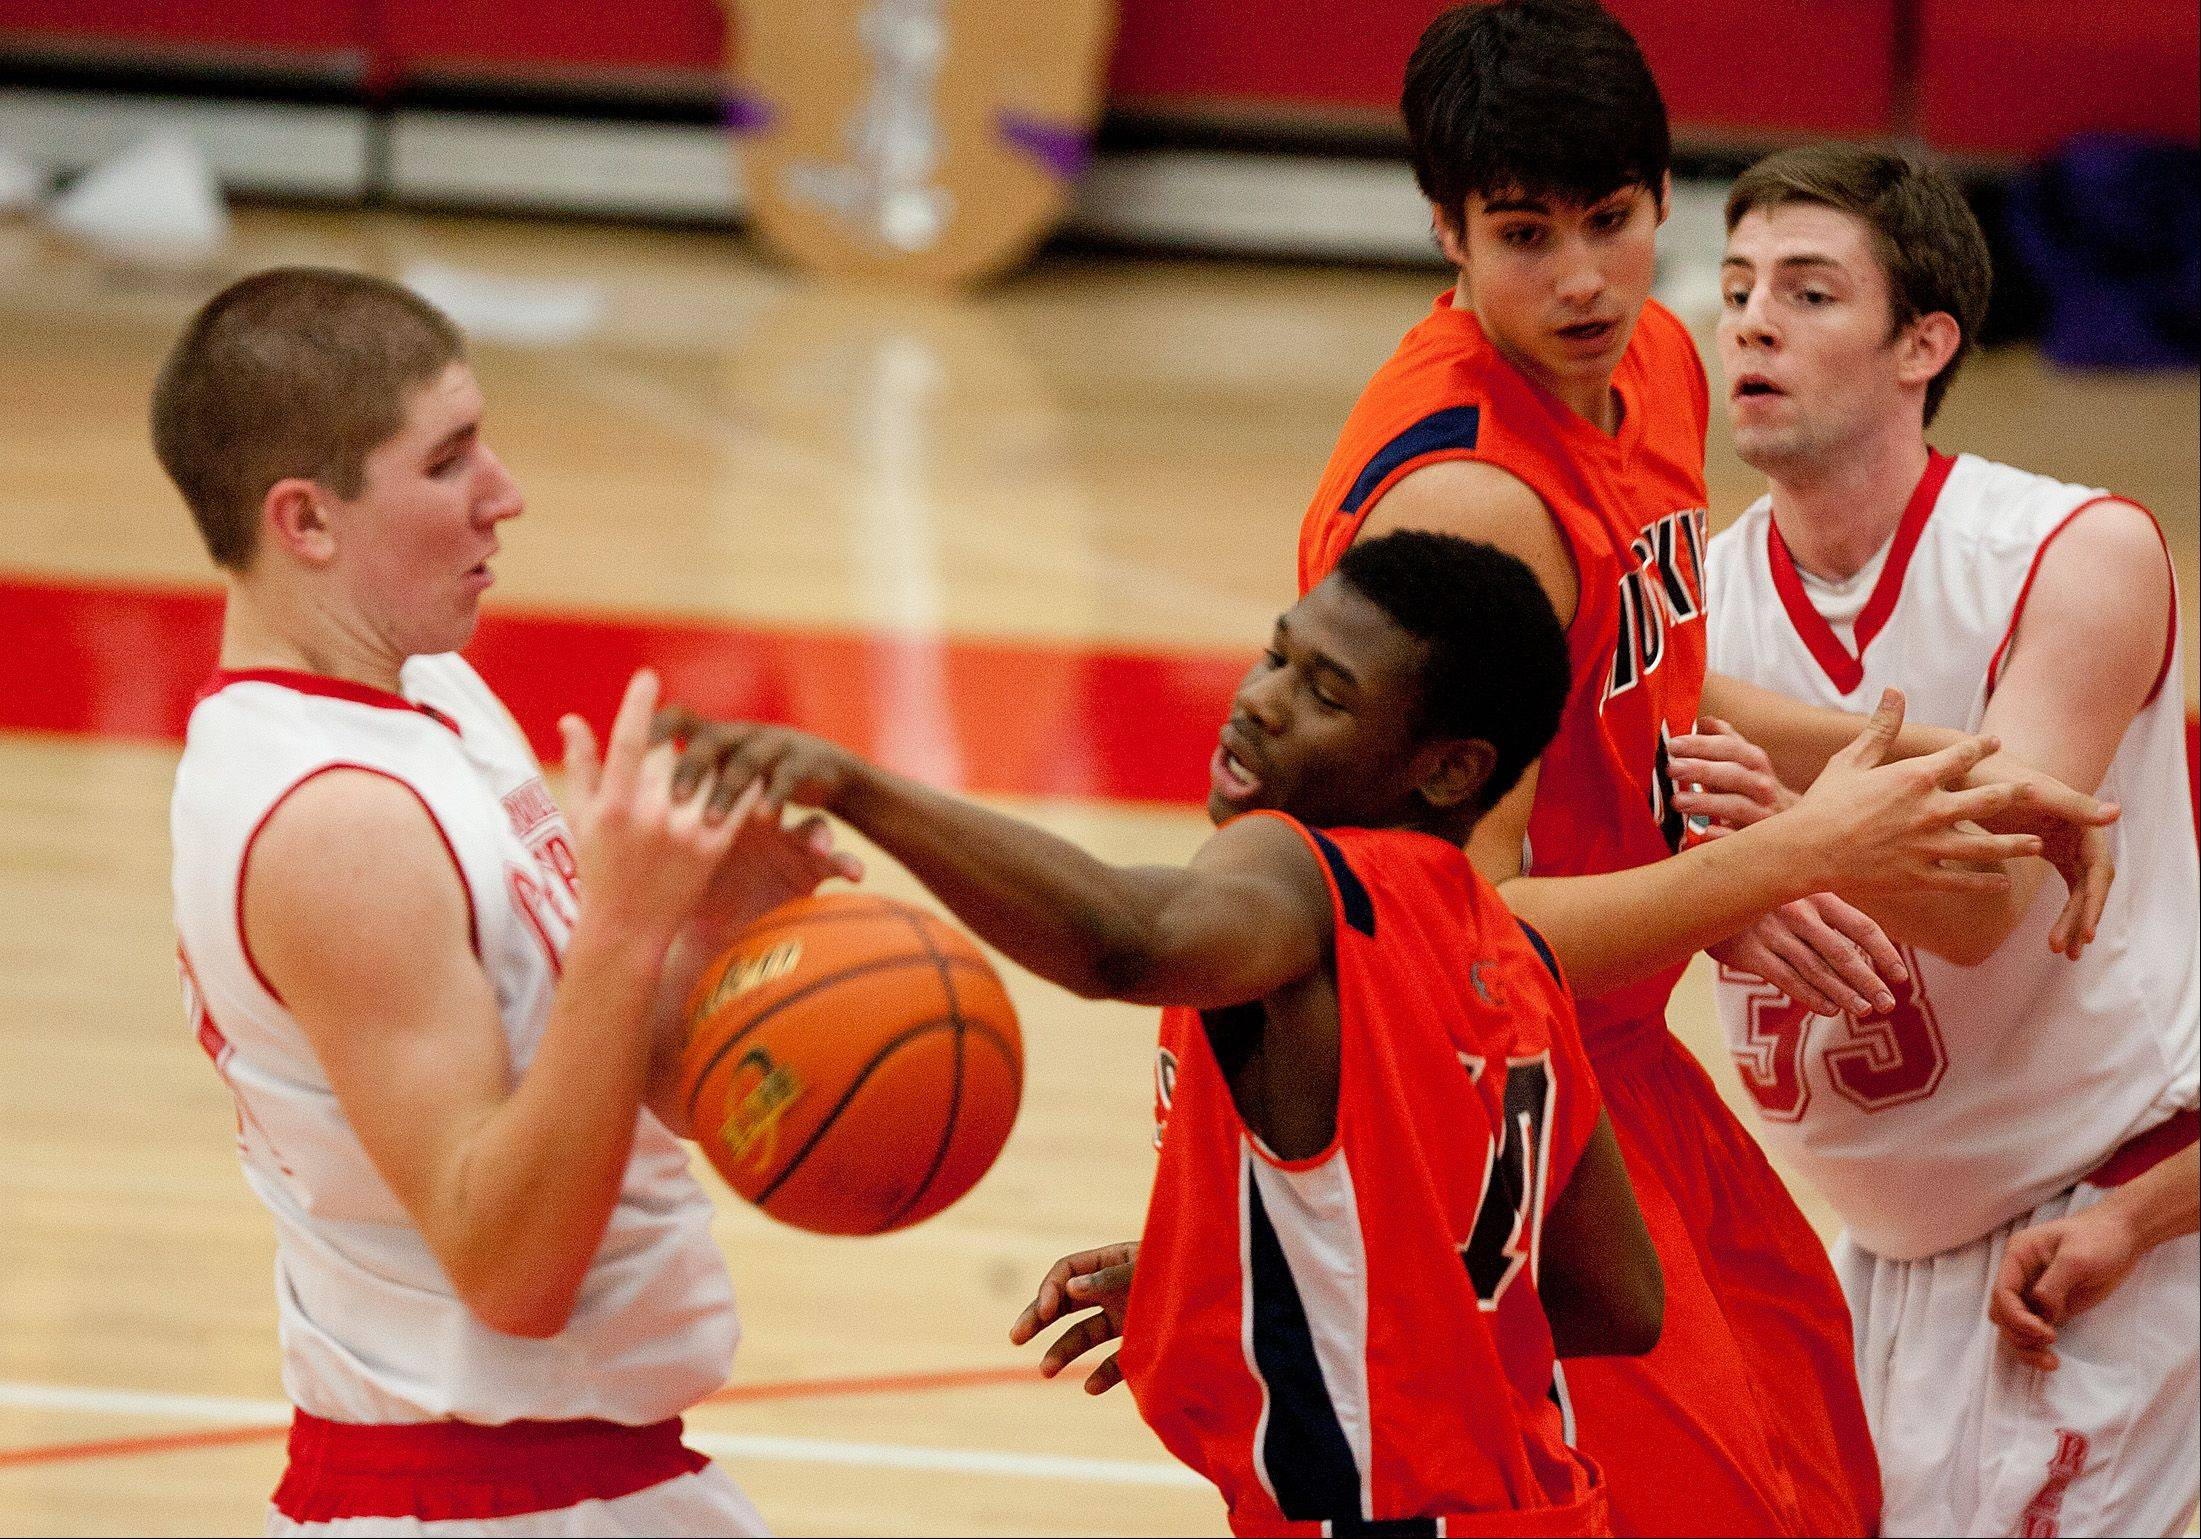 Naperville North's Jelani McClain Jr., center, fights for possession.